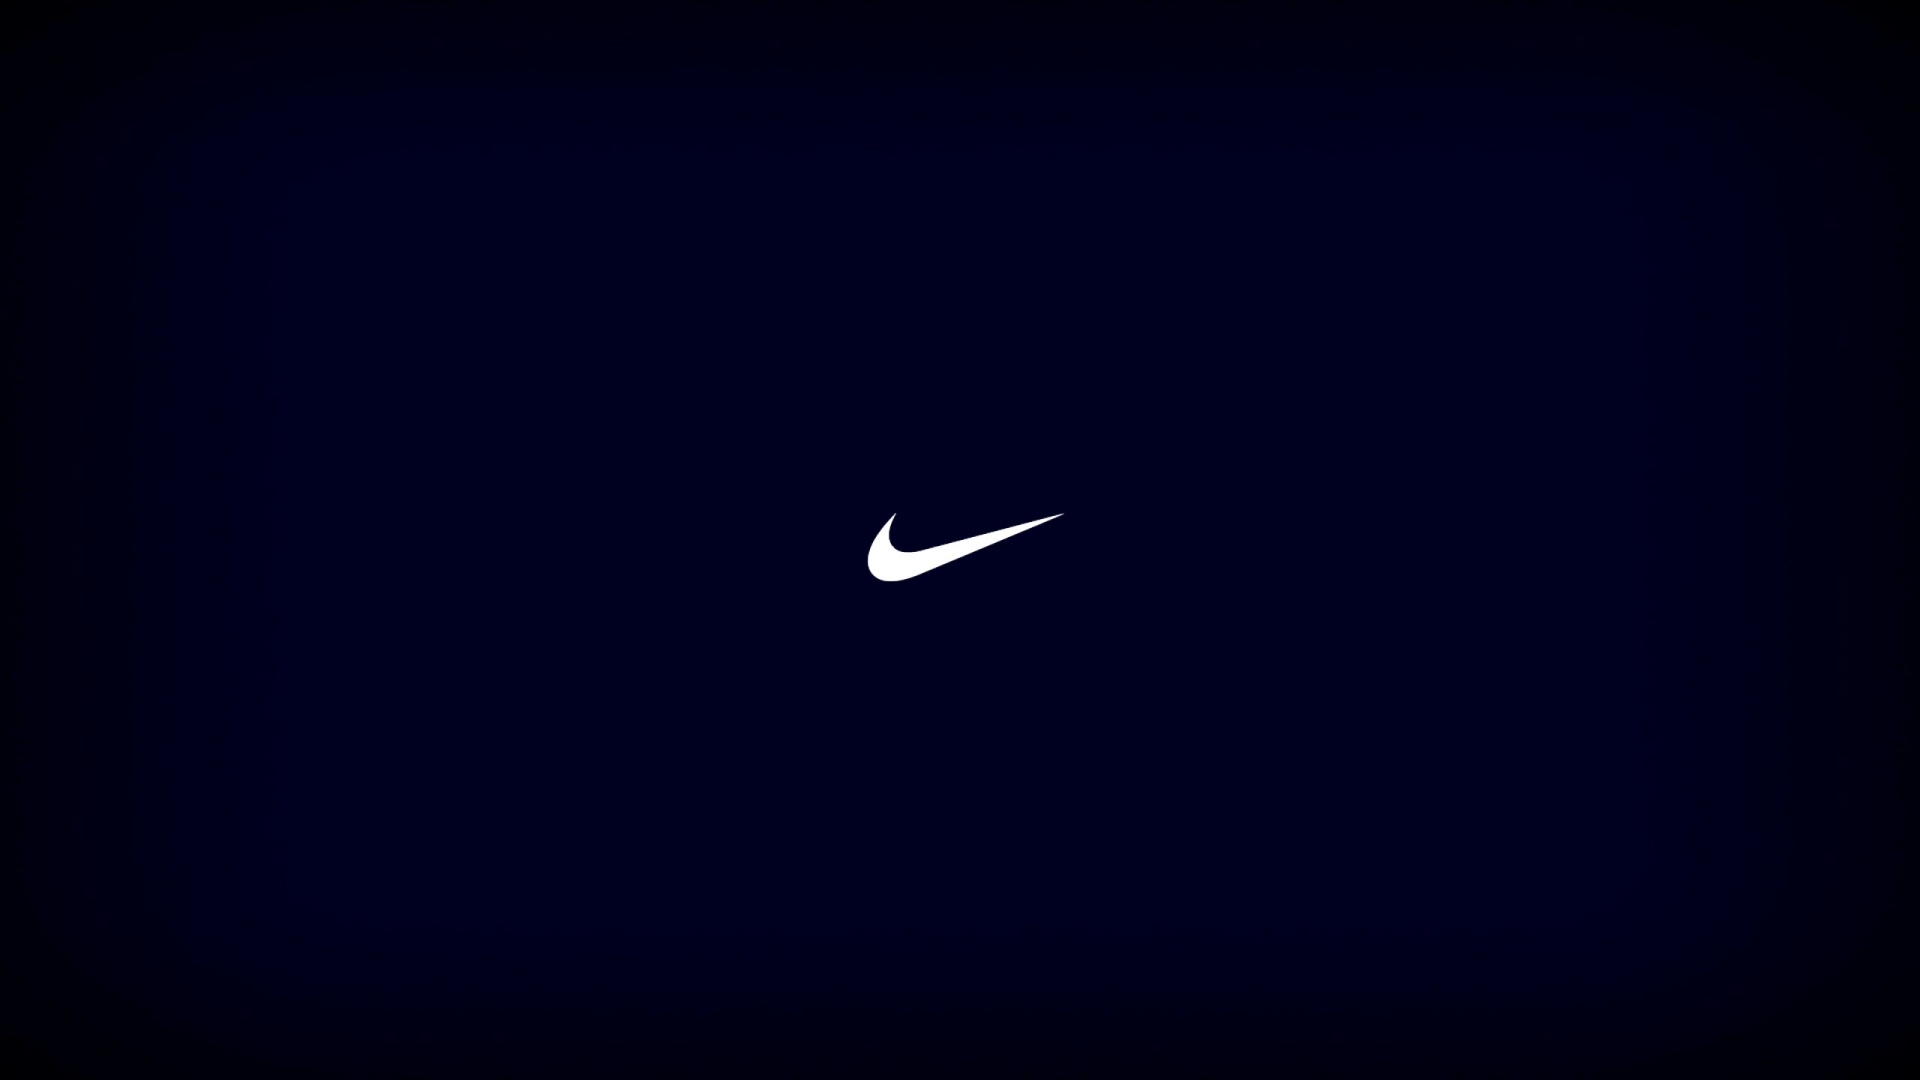 Nike Quotes Wallpaper Best 11845 High 1920x1080